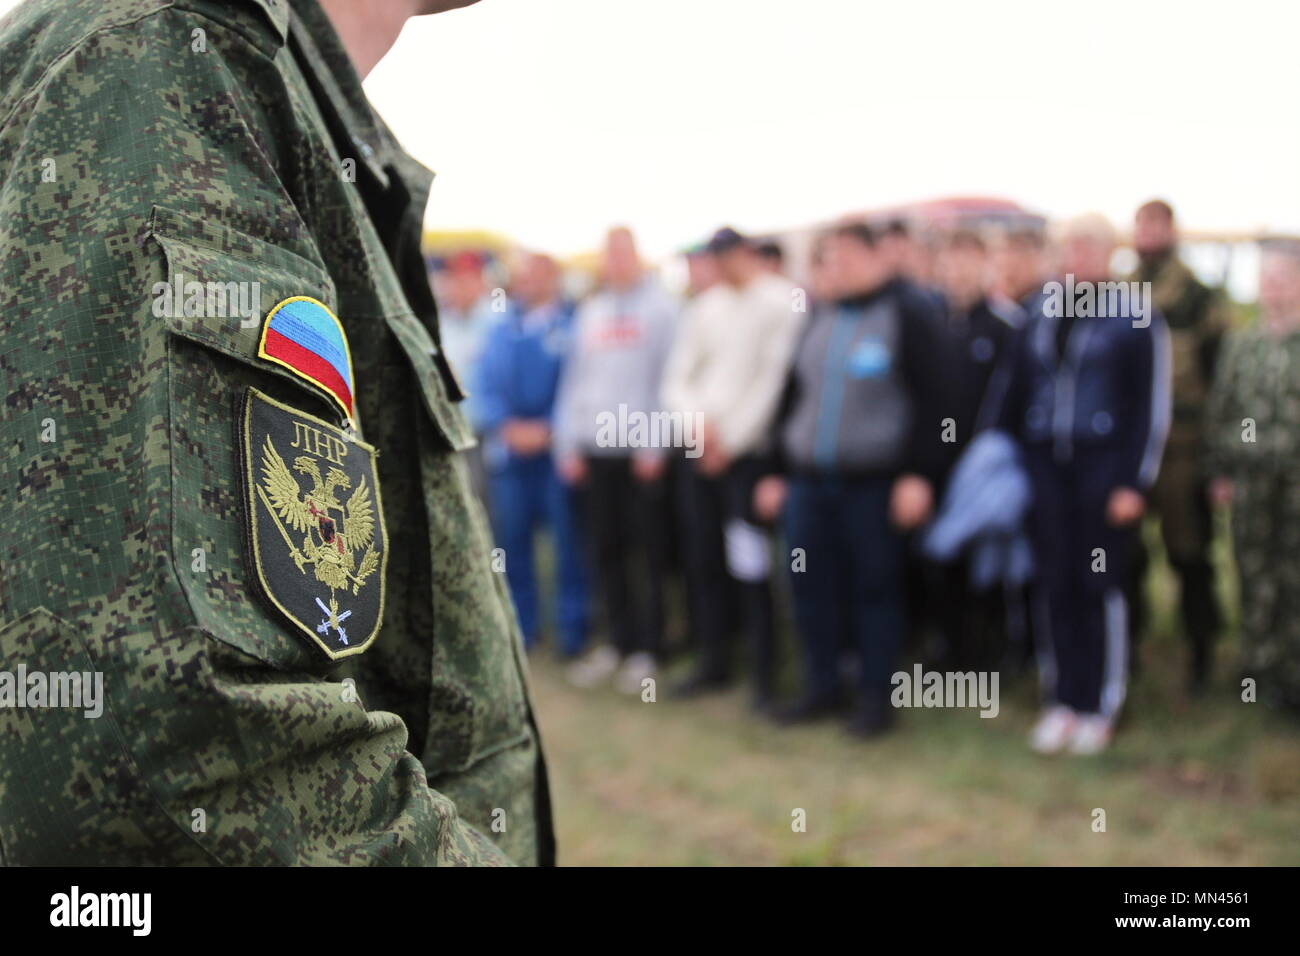 Employment agencies in Lugansk and region: a selection of sites